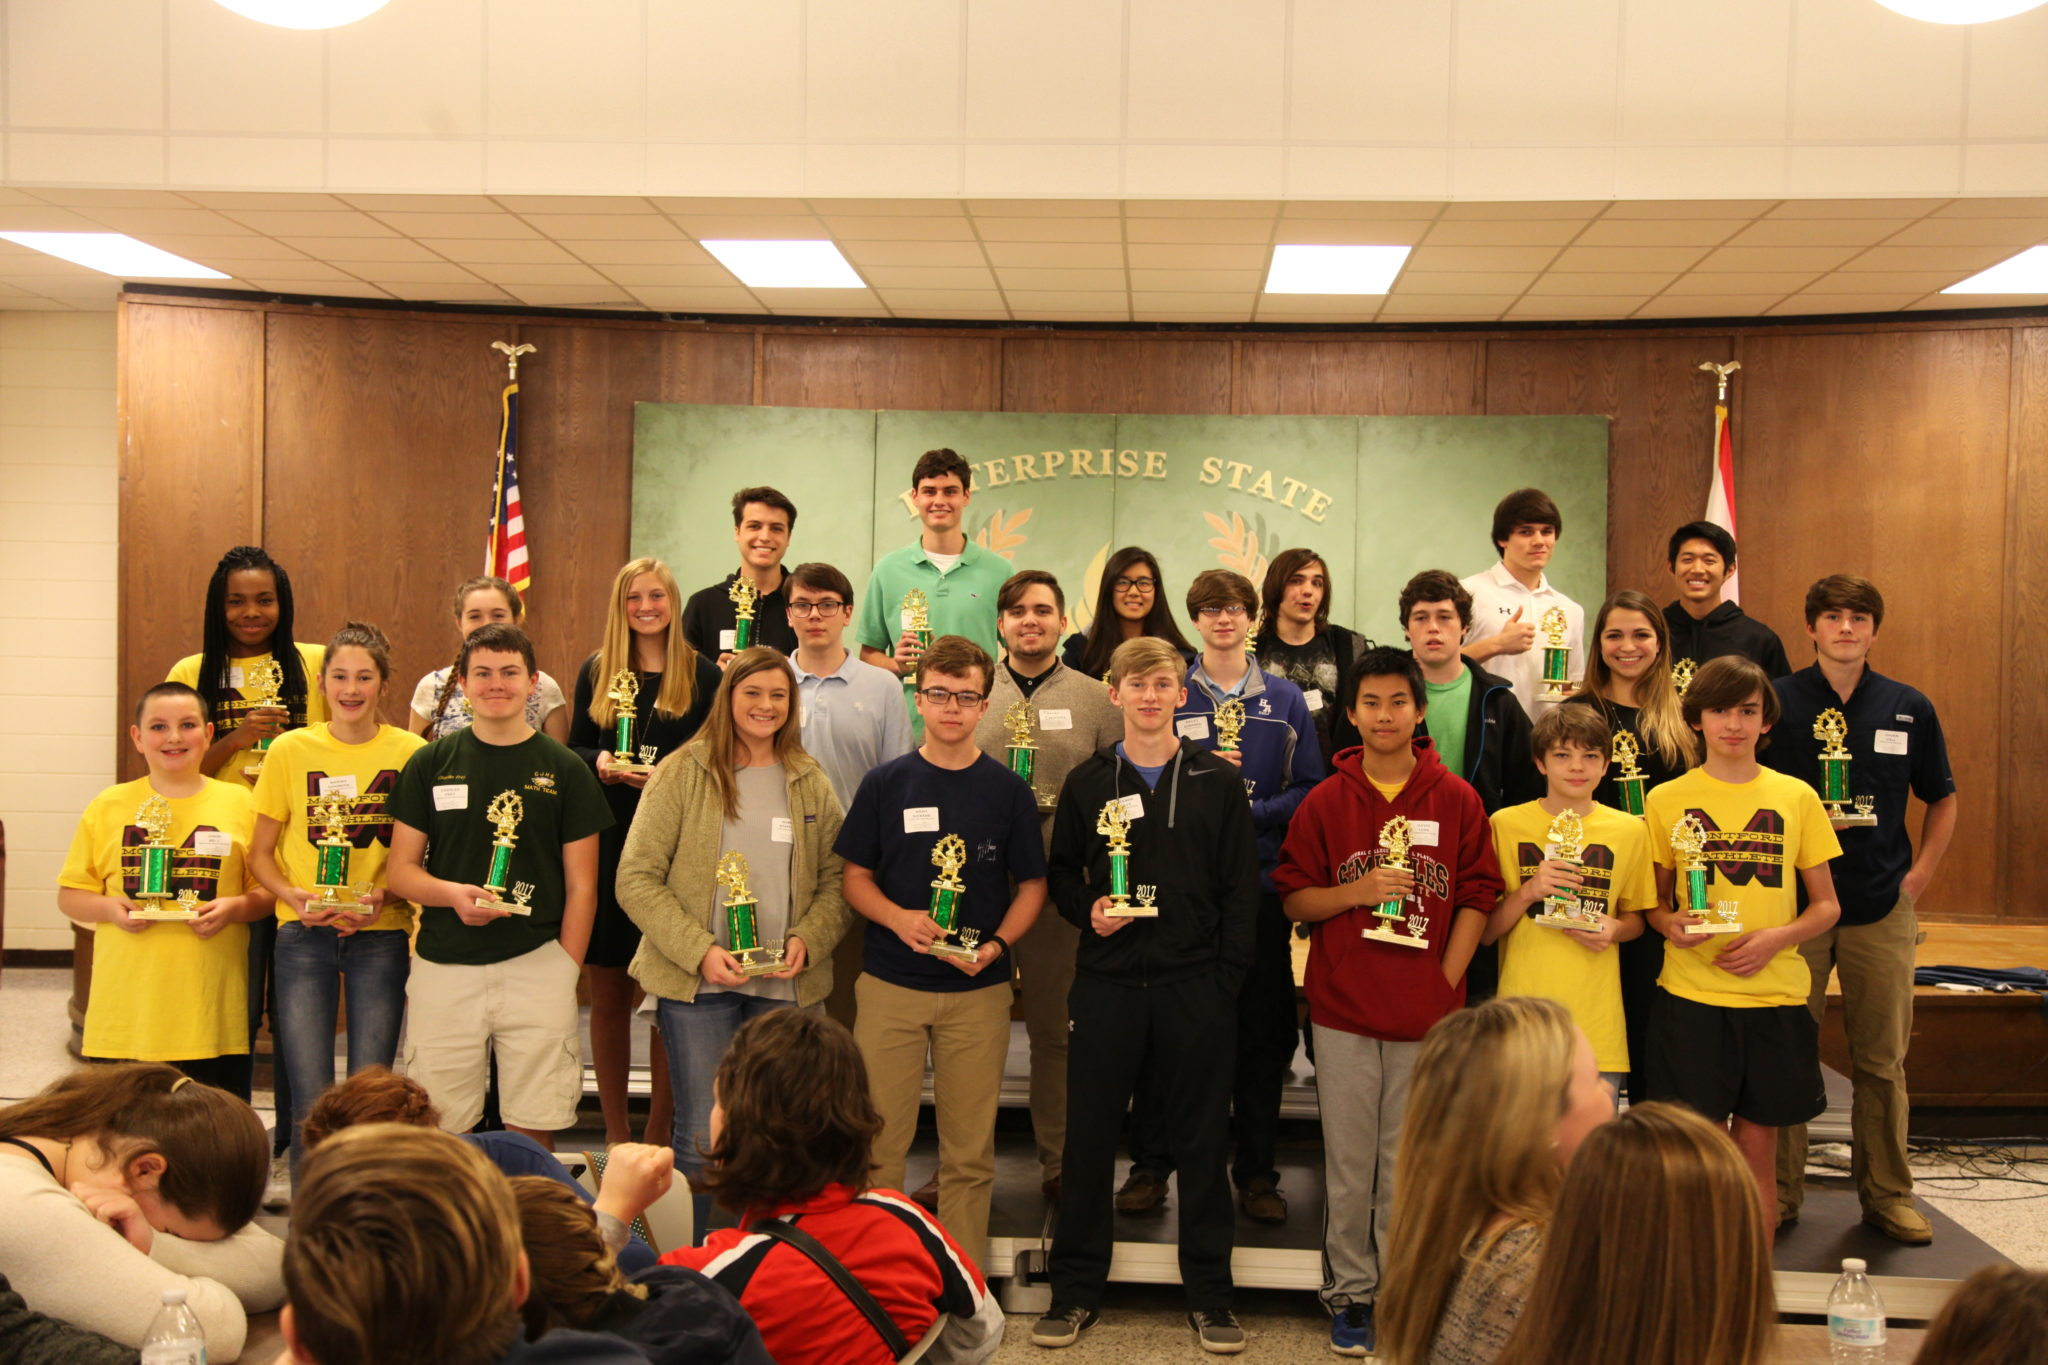 Enterprise State Community College Hosts Math Tournament